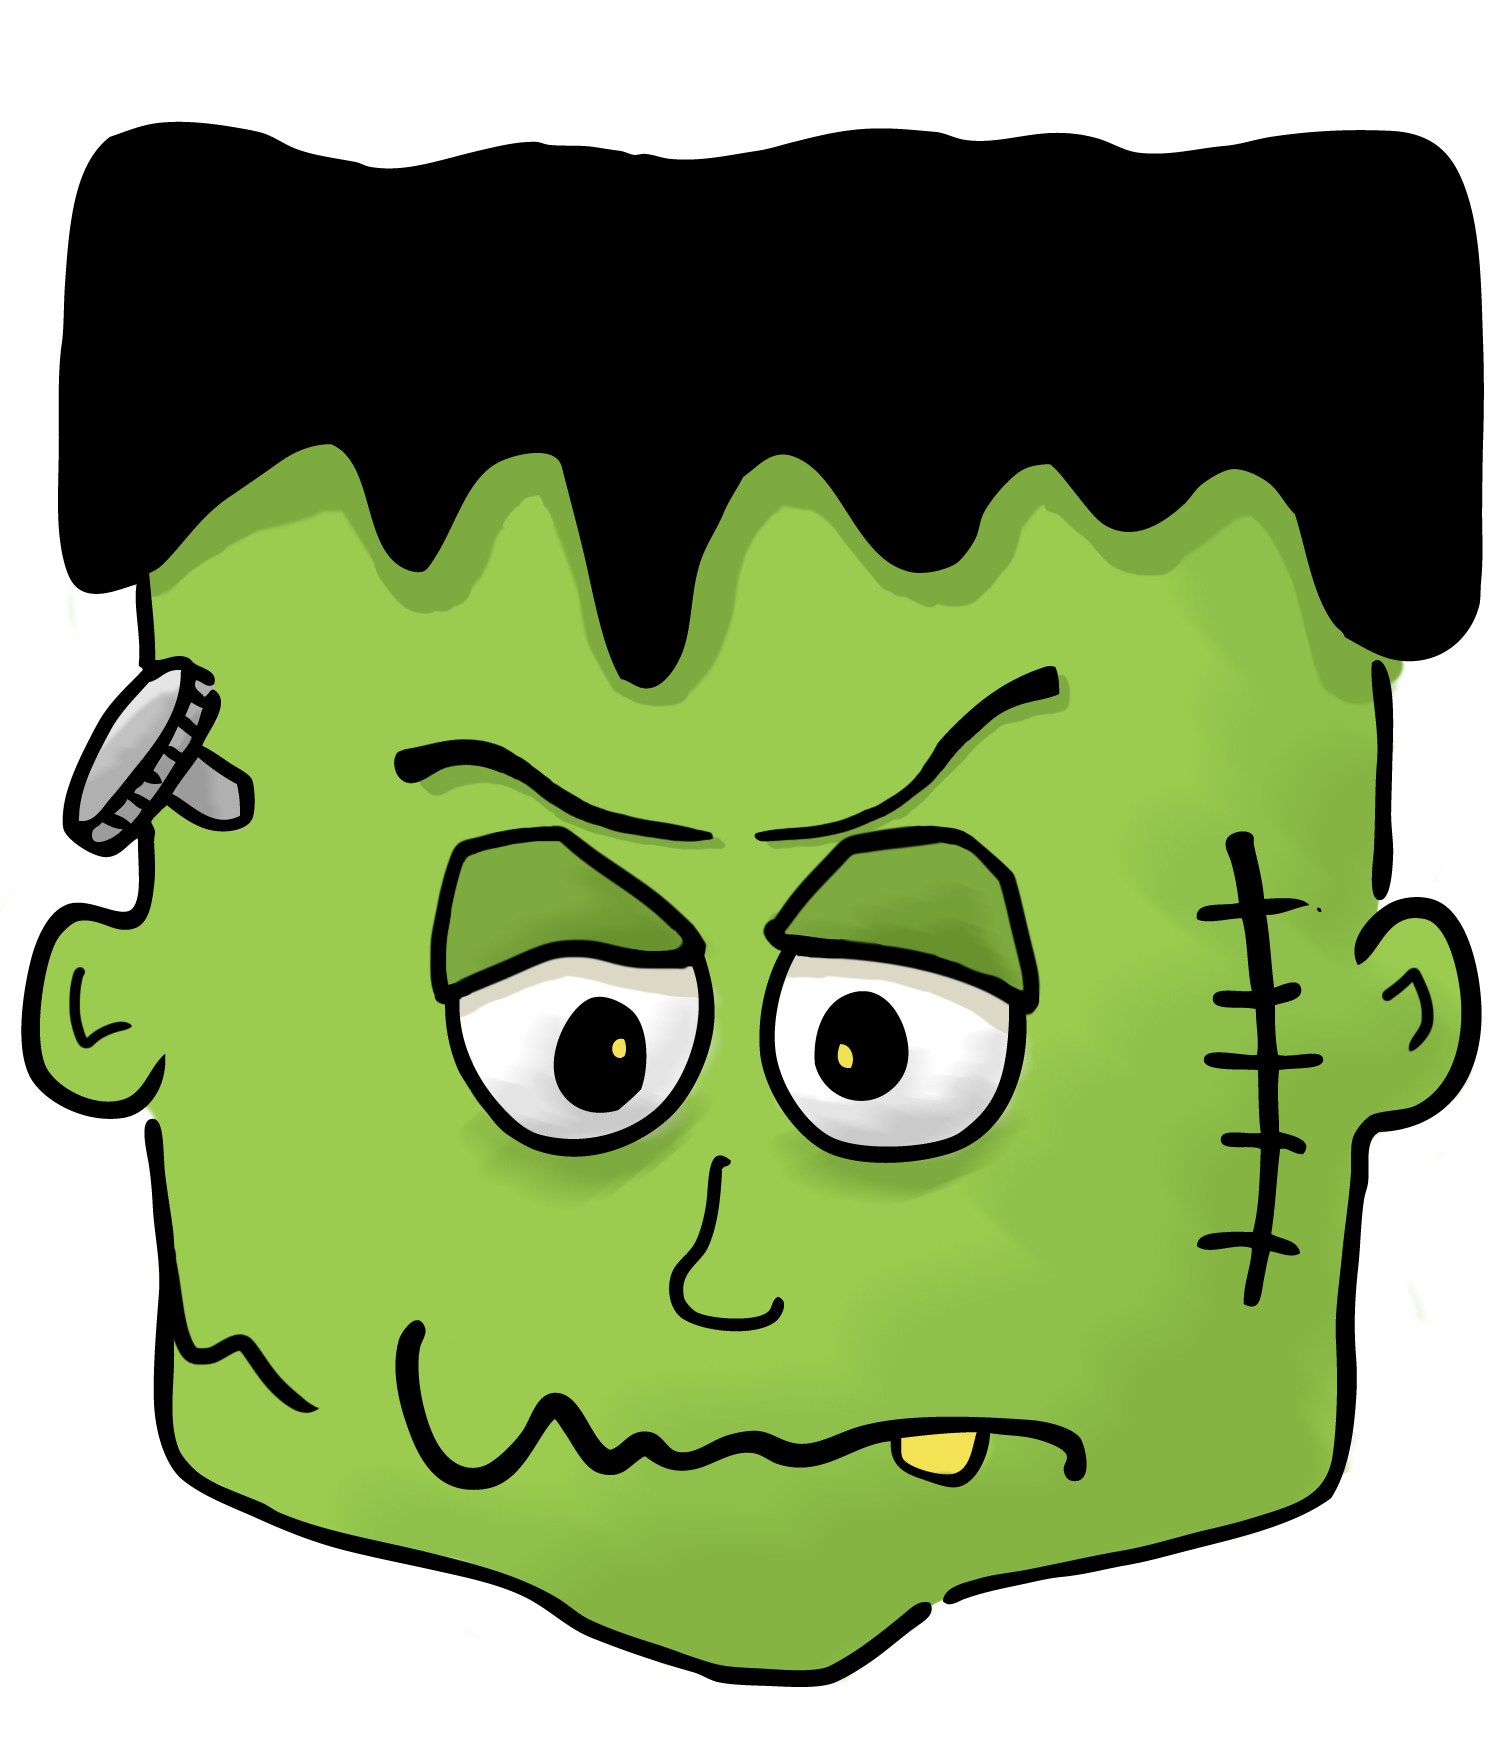 Frankenstein Clip Art - Cliparts.co